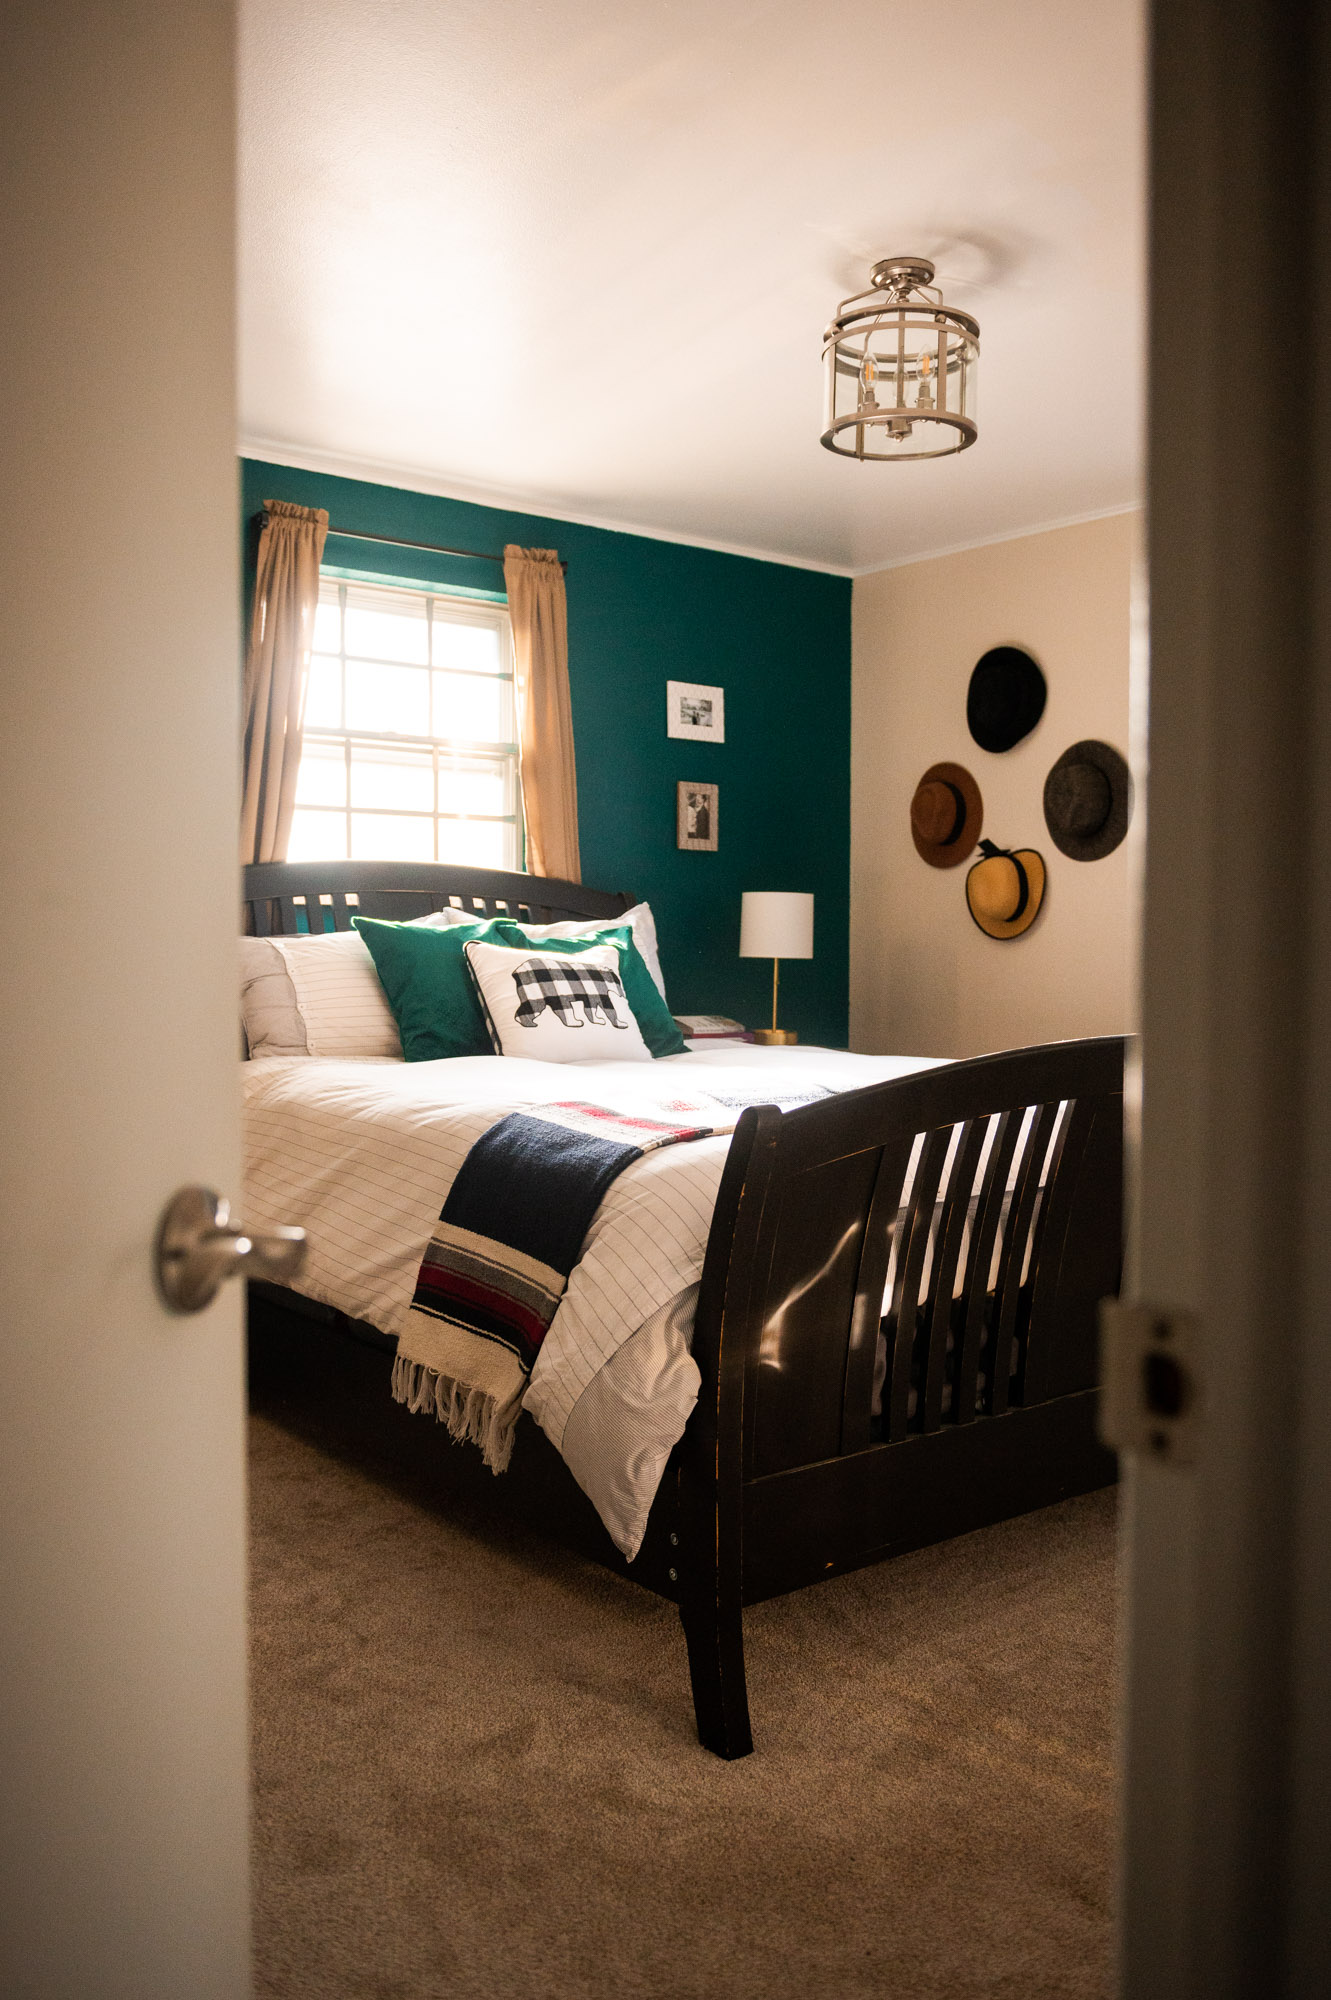 Looking into our Emerald green Master Bedroom